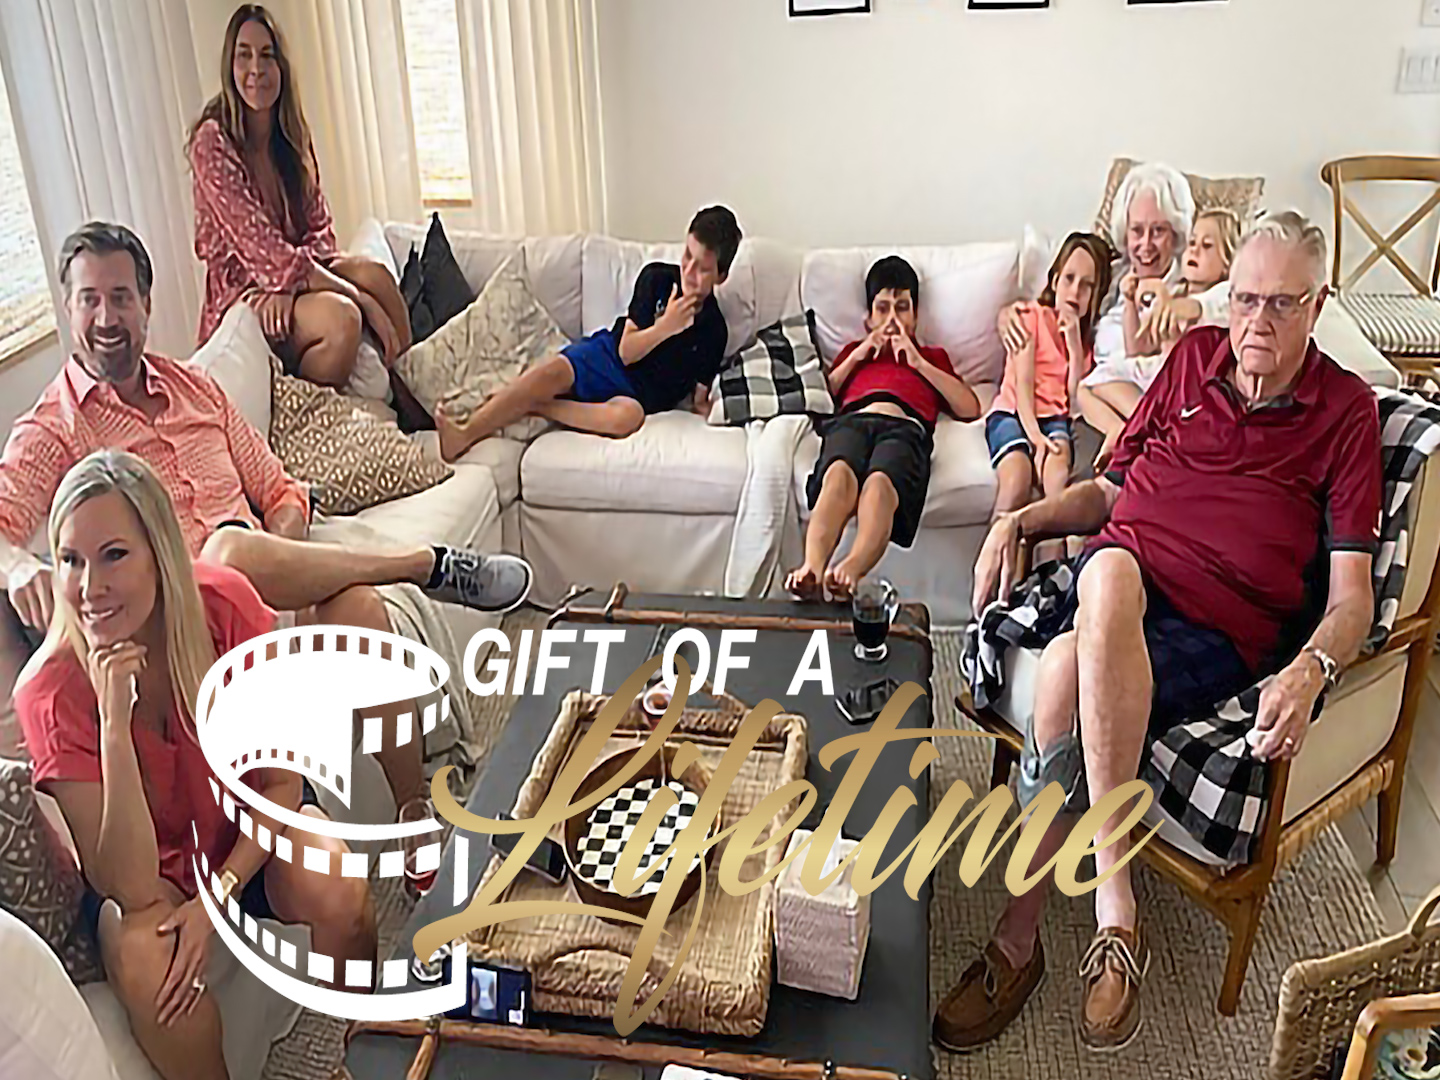 GIFT OF A LIFETIME - INSTANT REACTION FROM OUR CLIENTS